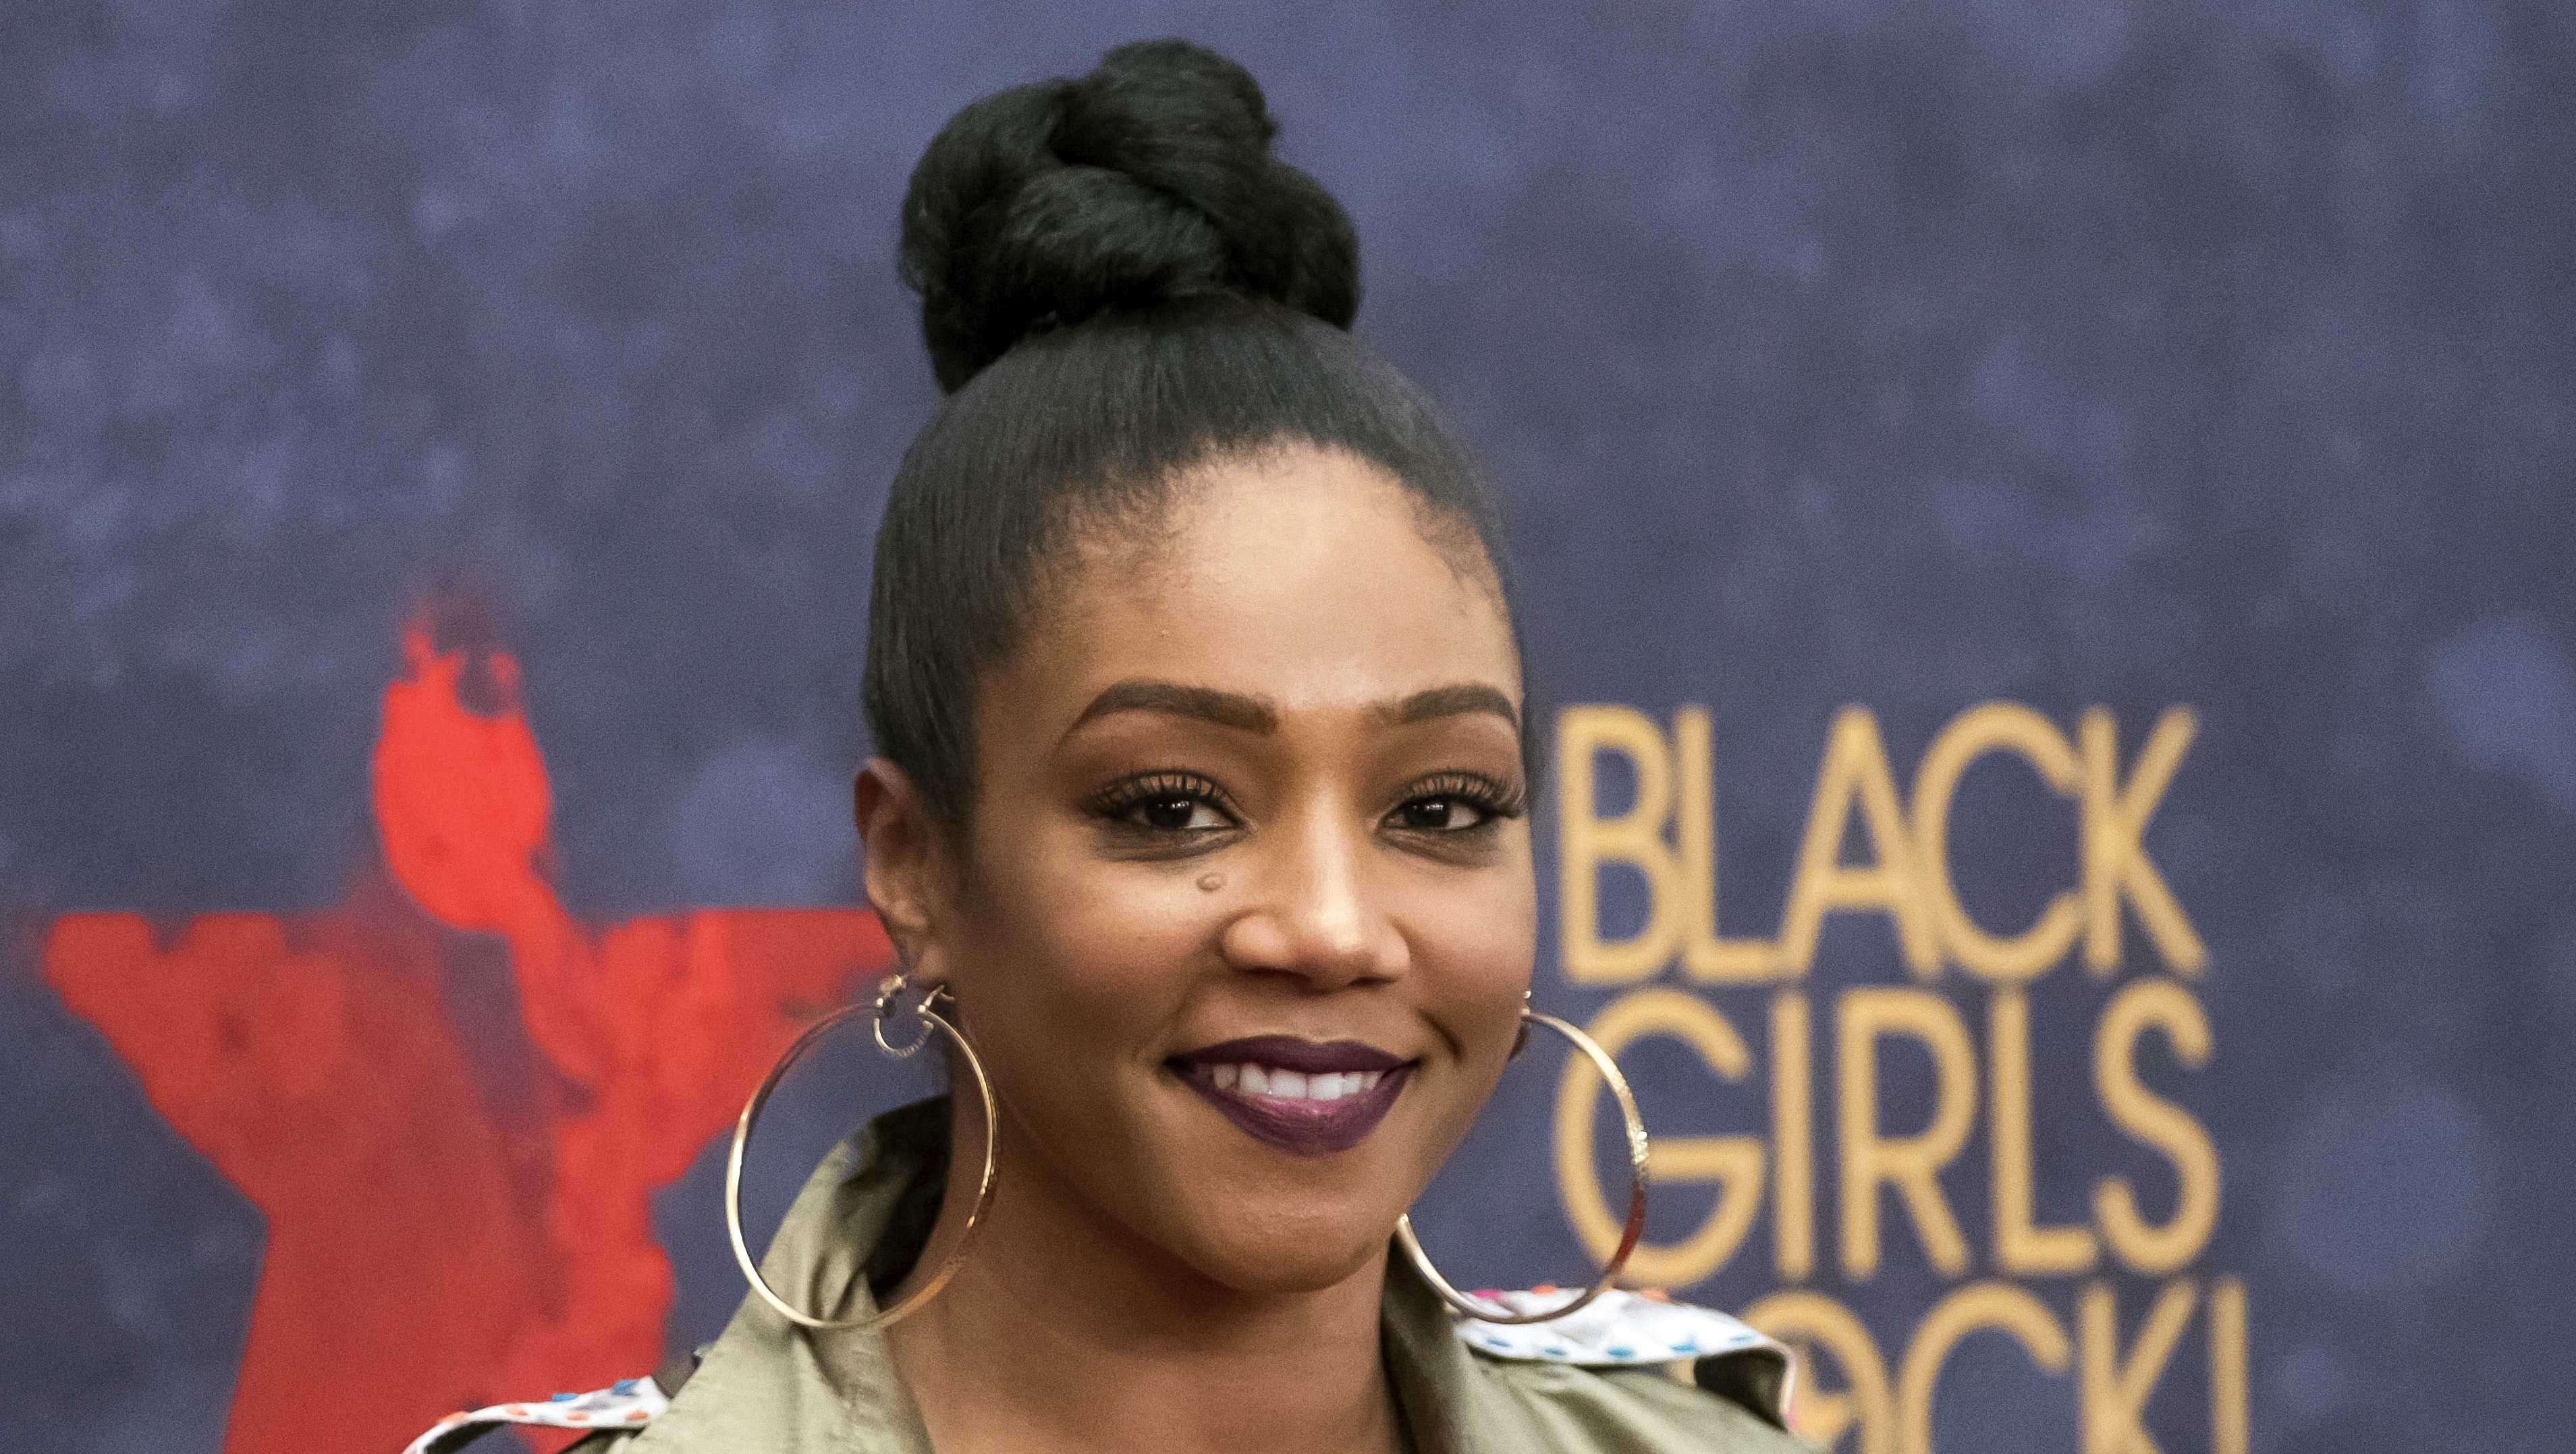 """In this Aug. 5, 2017 file photo, Tiffany Haddish attends the Black Girls Rock! Awards at the New Jersey Performing Arts Center in Newark, N.J. Haddish is set to host the 2018 MTV Movie & TV Awards. The network announced Thursday, Feb. 22, 2018, that the """"Girls Trip"""" breakout star will host the ceremony in Los Angeles on June 18."""